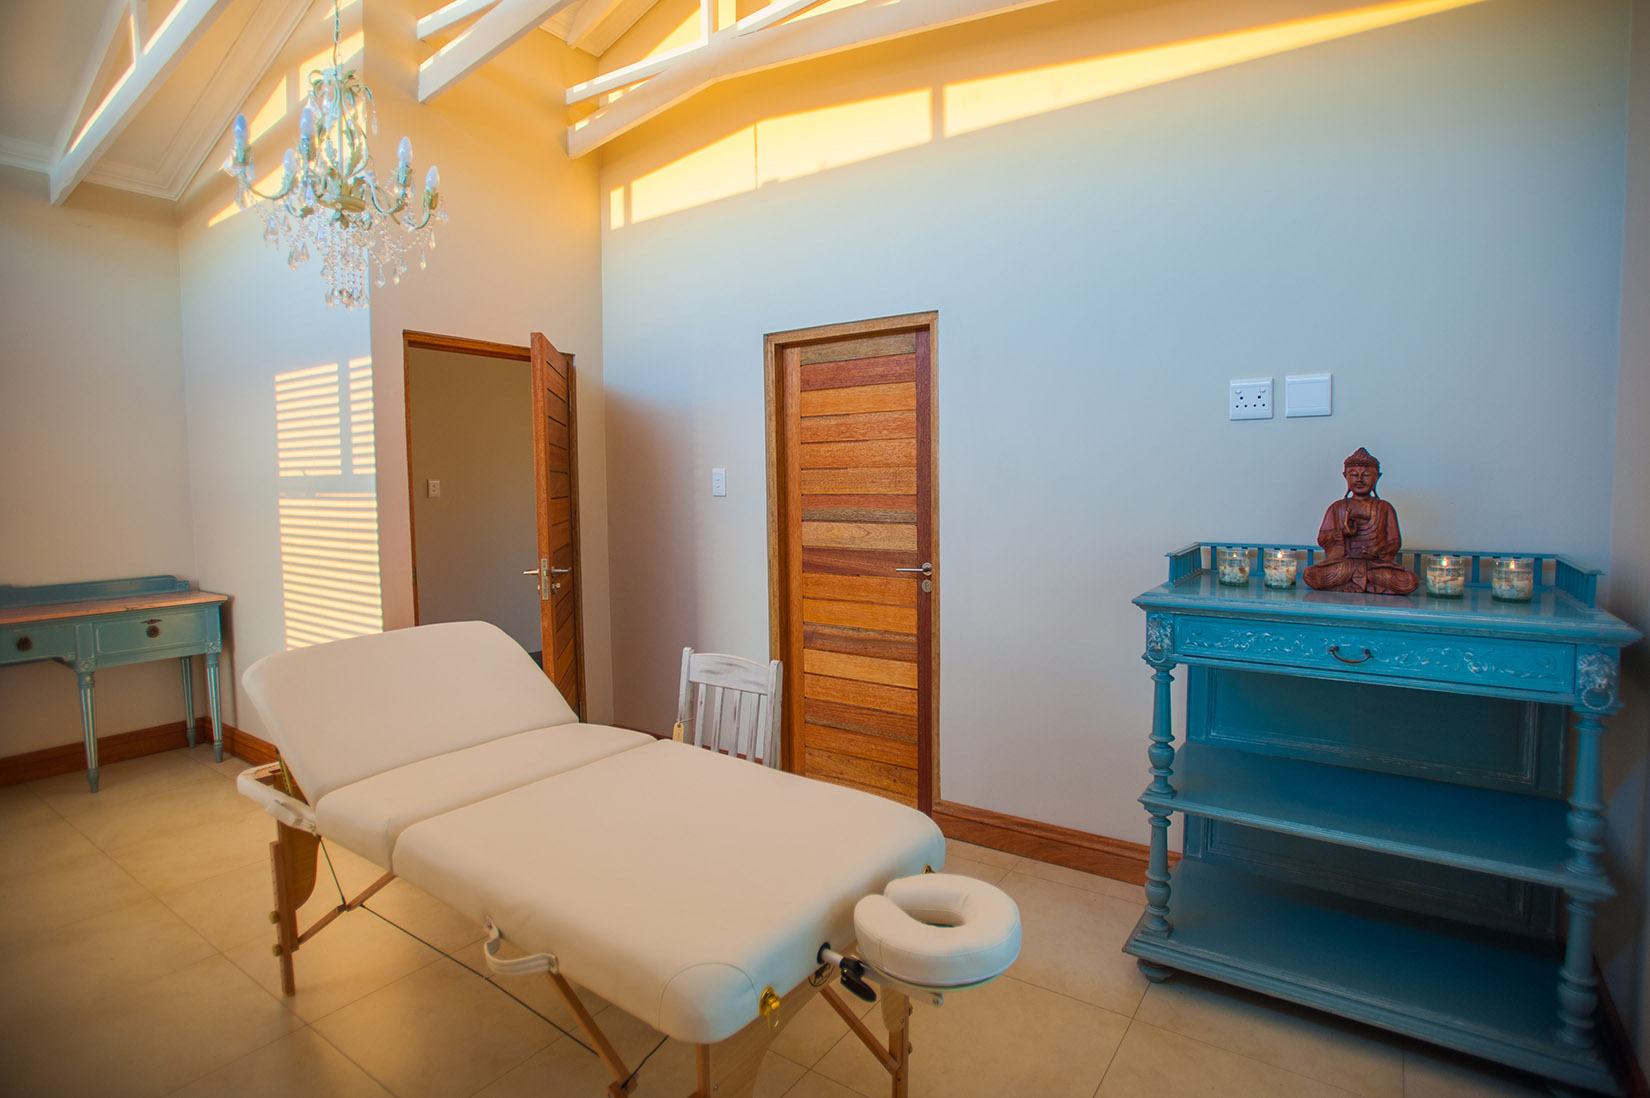 The Wild Olive treatment room